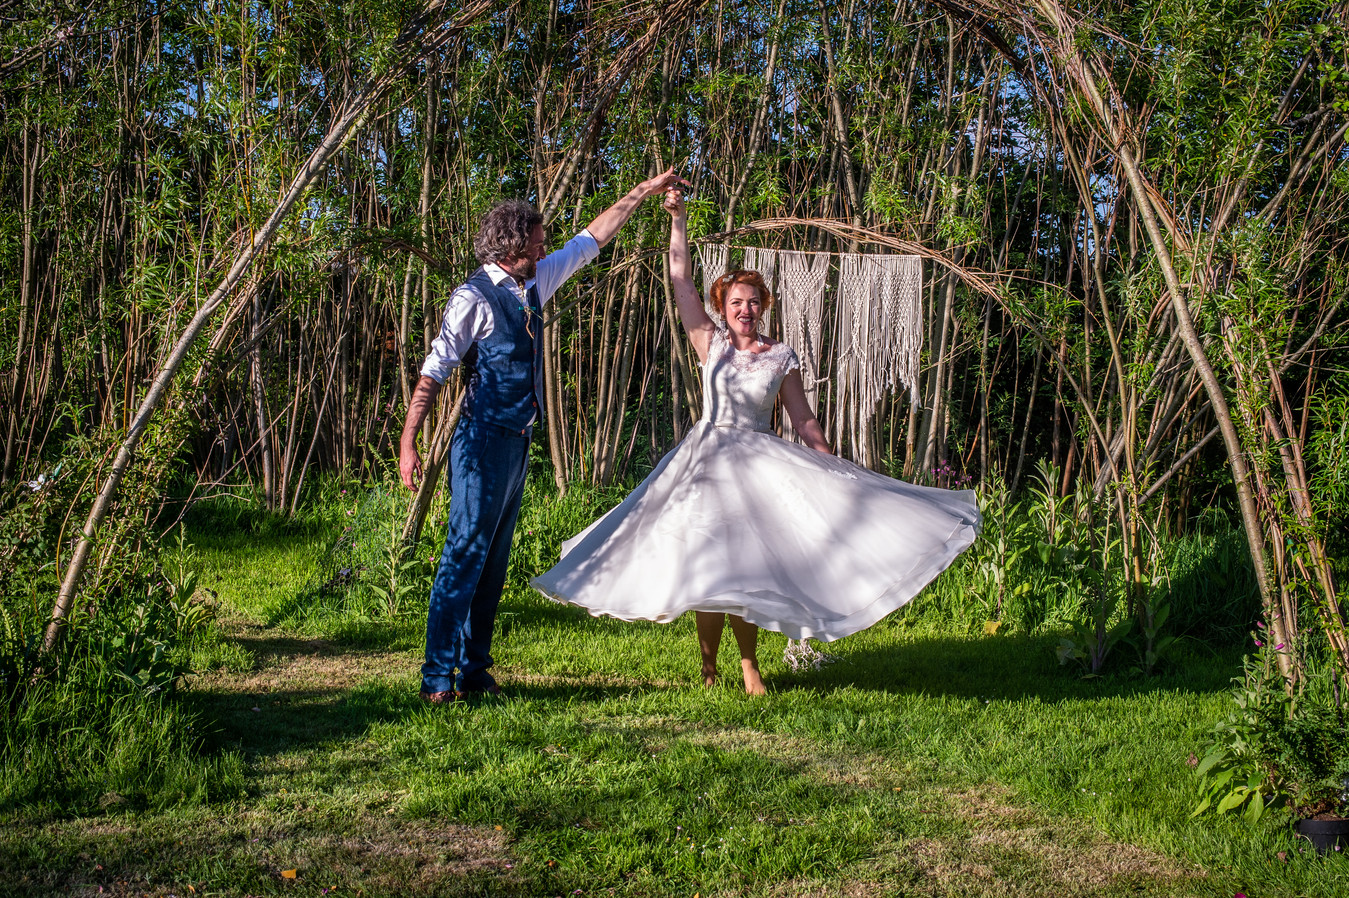 Megan and Tom and another twirl in the sun